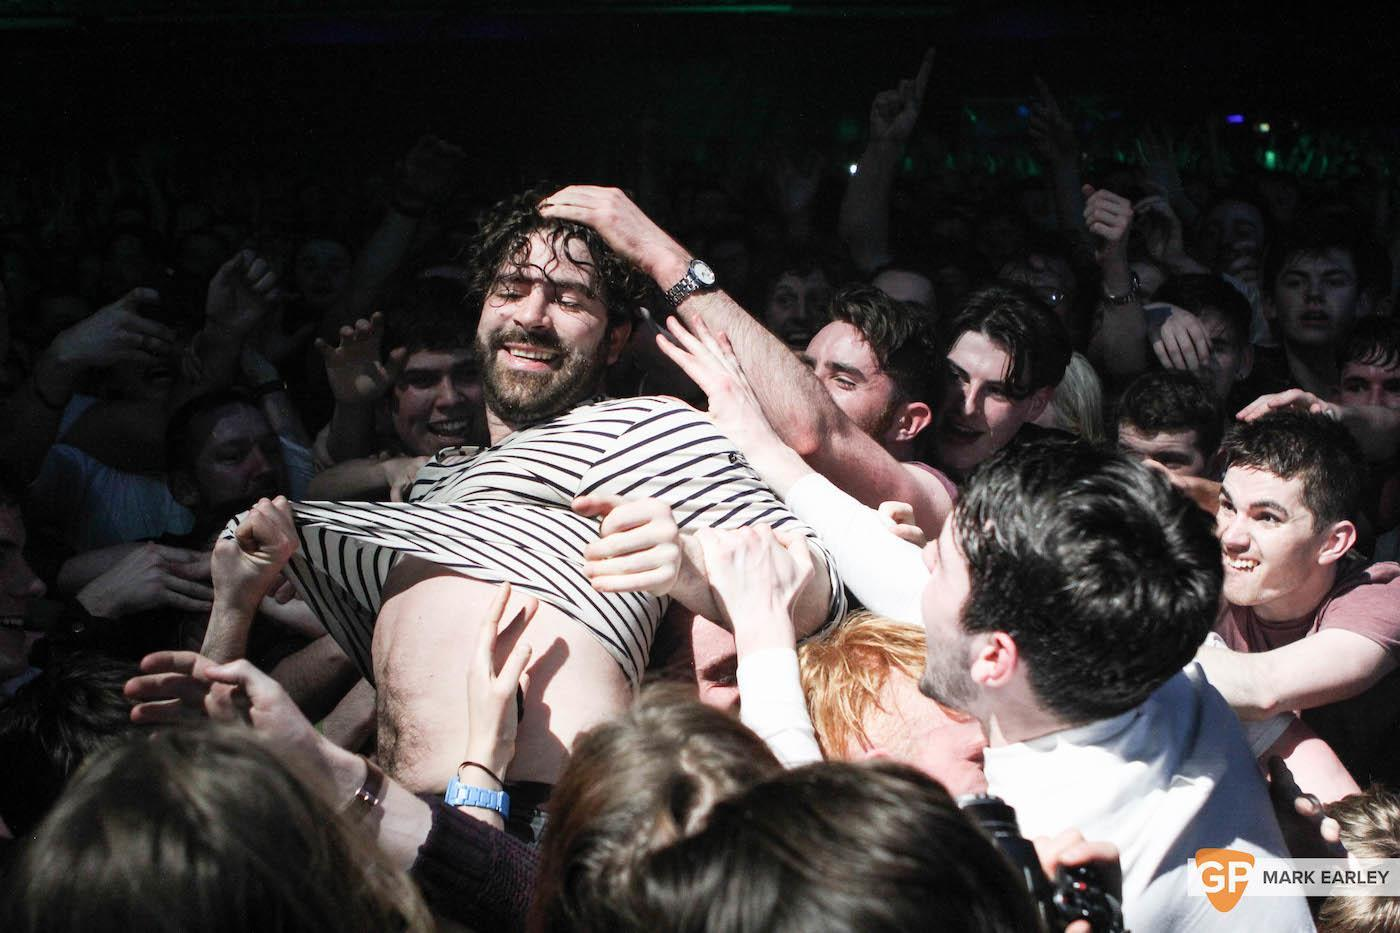 Foals at 3Arena by Mark Earley for GoldenPlec on February 10th, 2016.